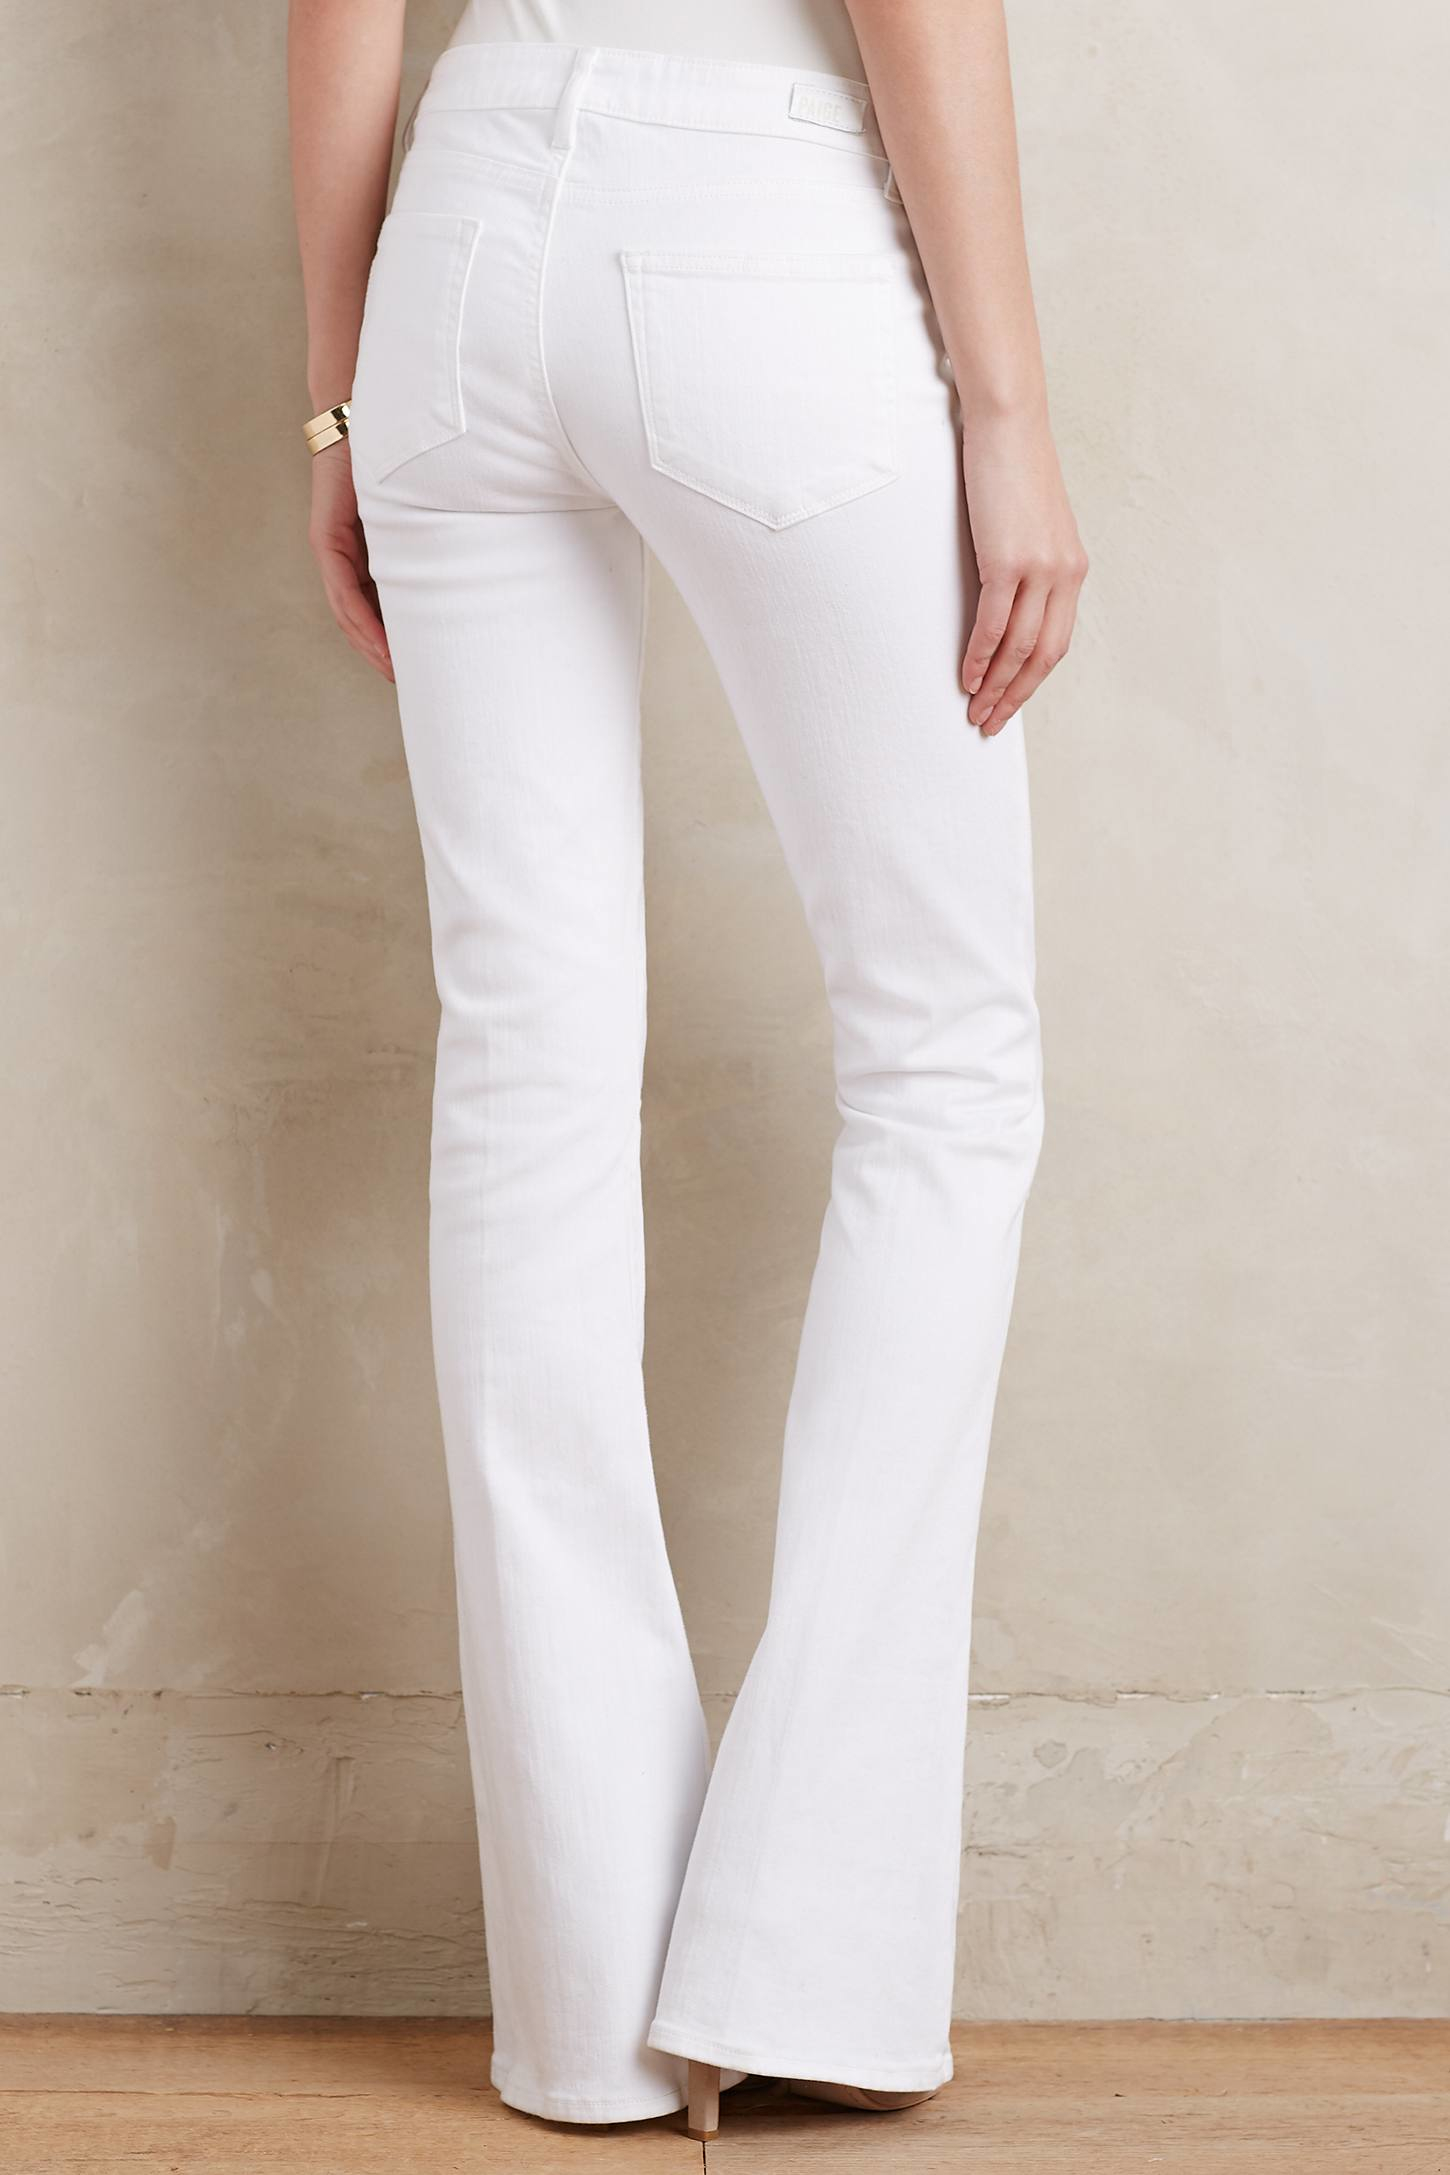 Paige Lou Lou Mid-rise Petite Flare Jeans in White   Lyst